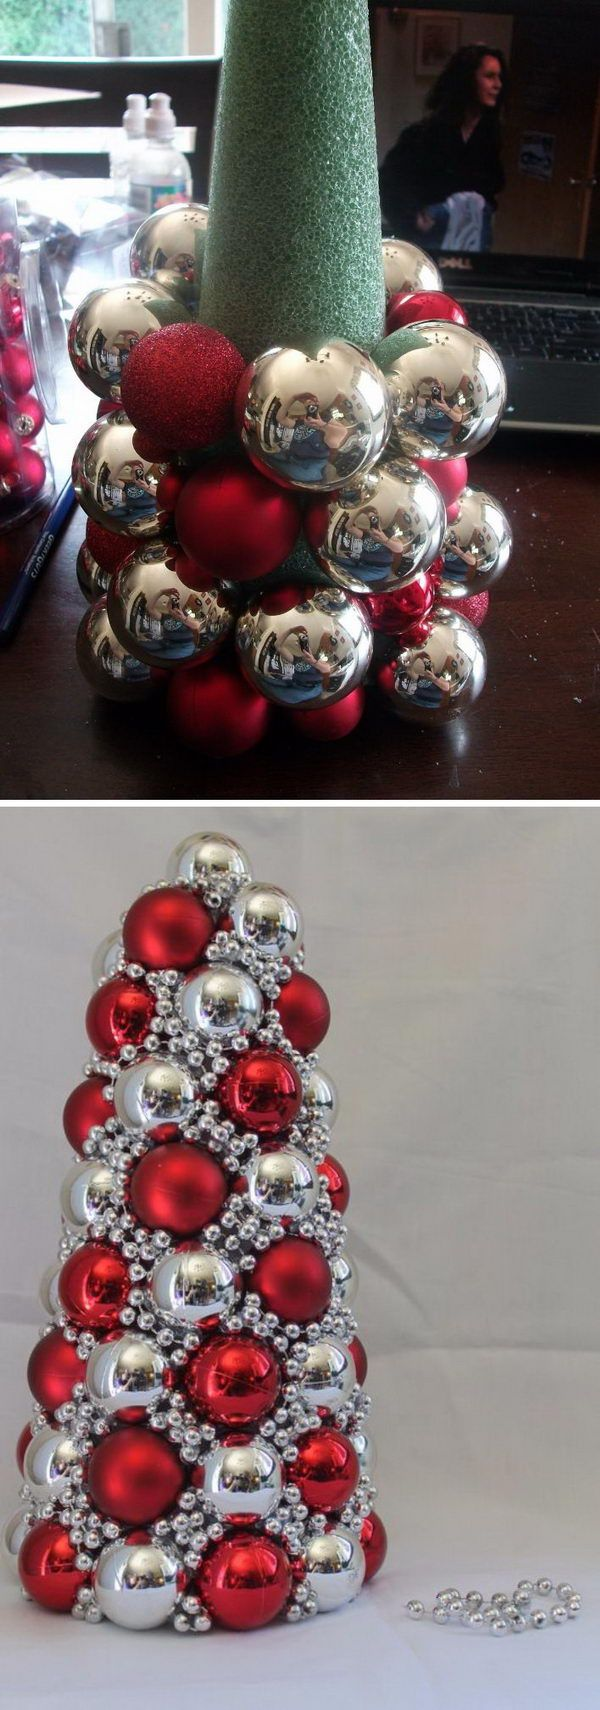 Christmas Ornament Crafts Diy : Best ideas about diy christmas crafts on